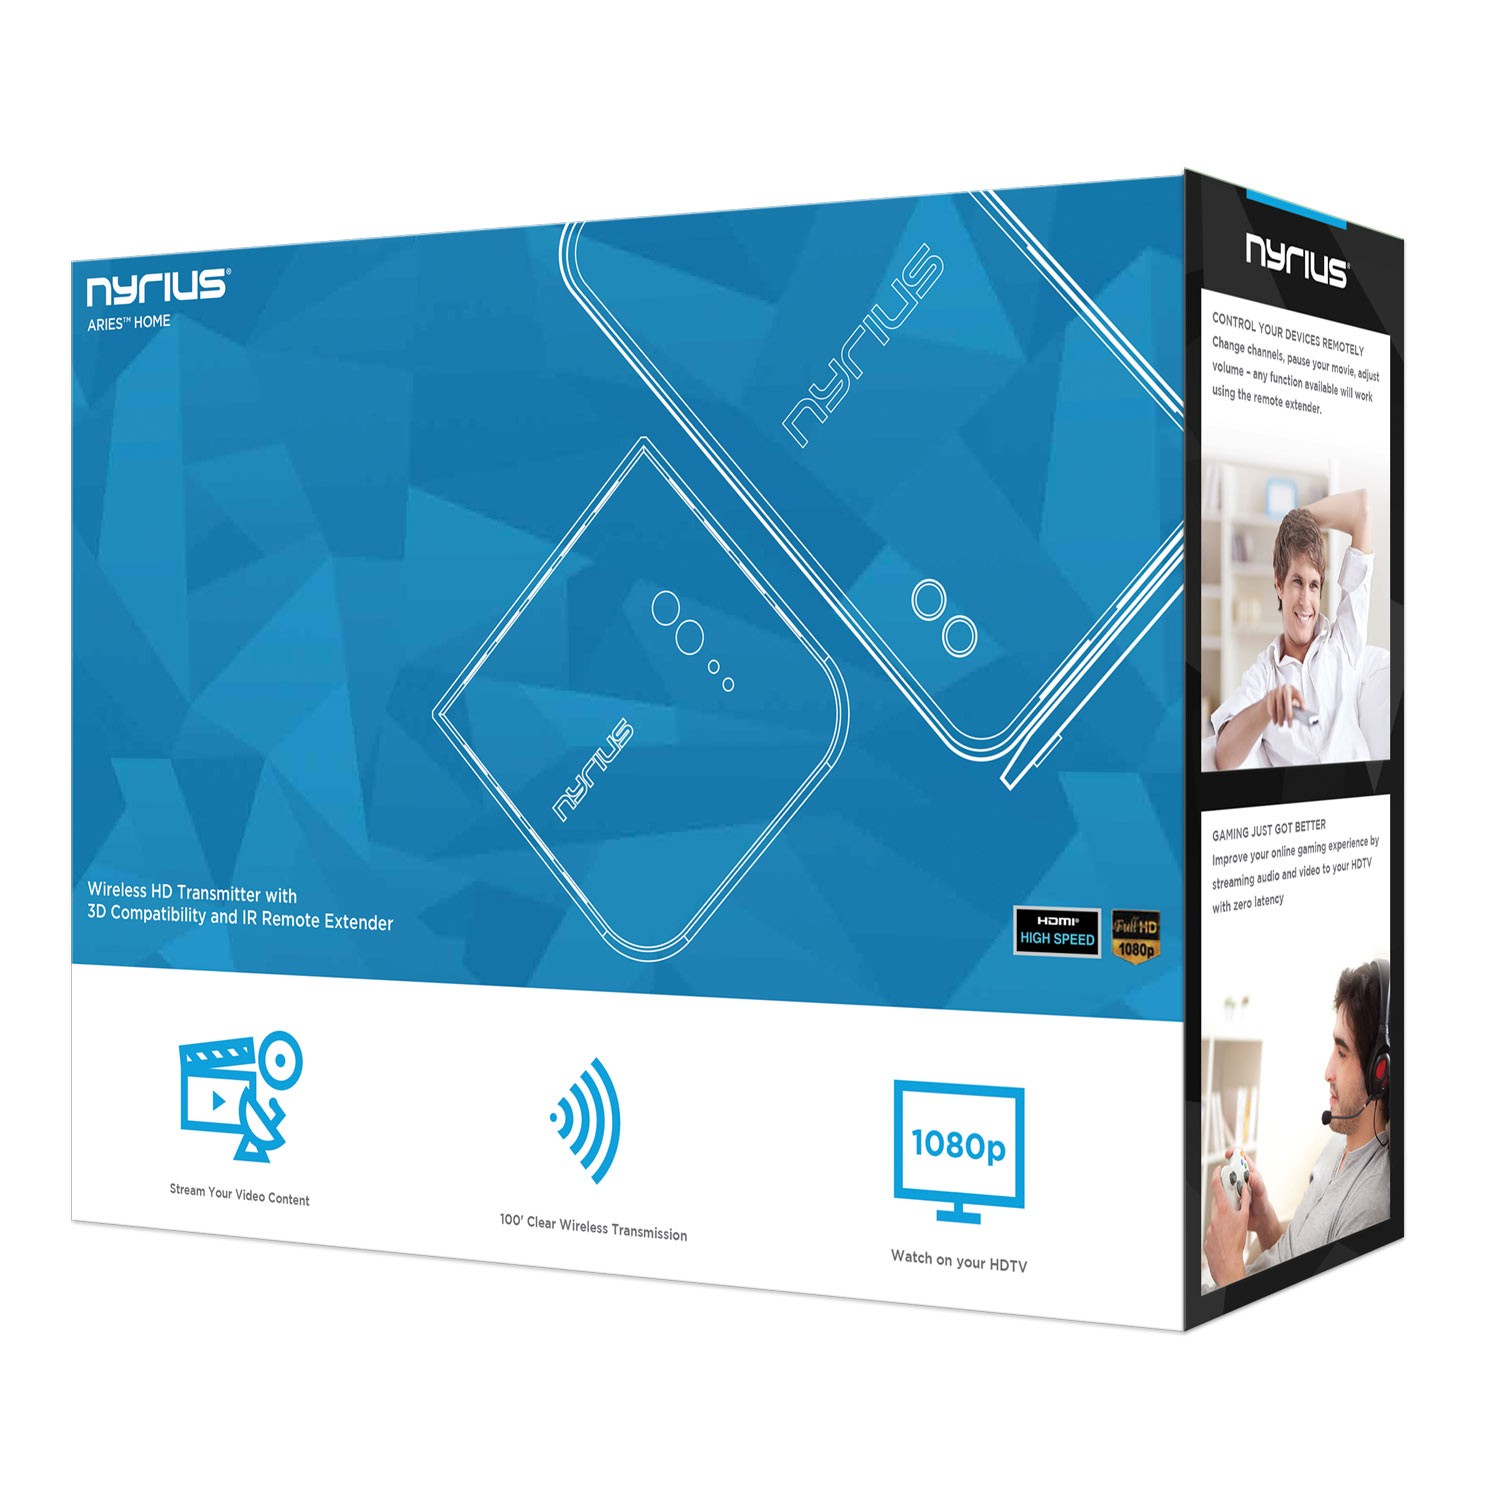 NAVS500 ARIES Home Wireless HD Digital Transmitter & Receiver | Nyrius